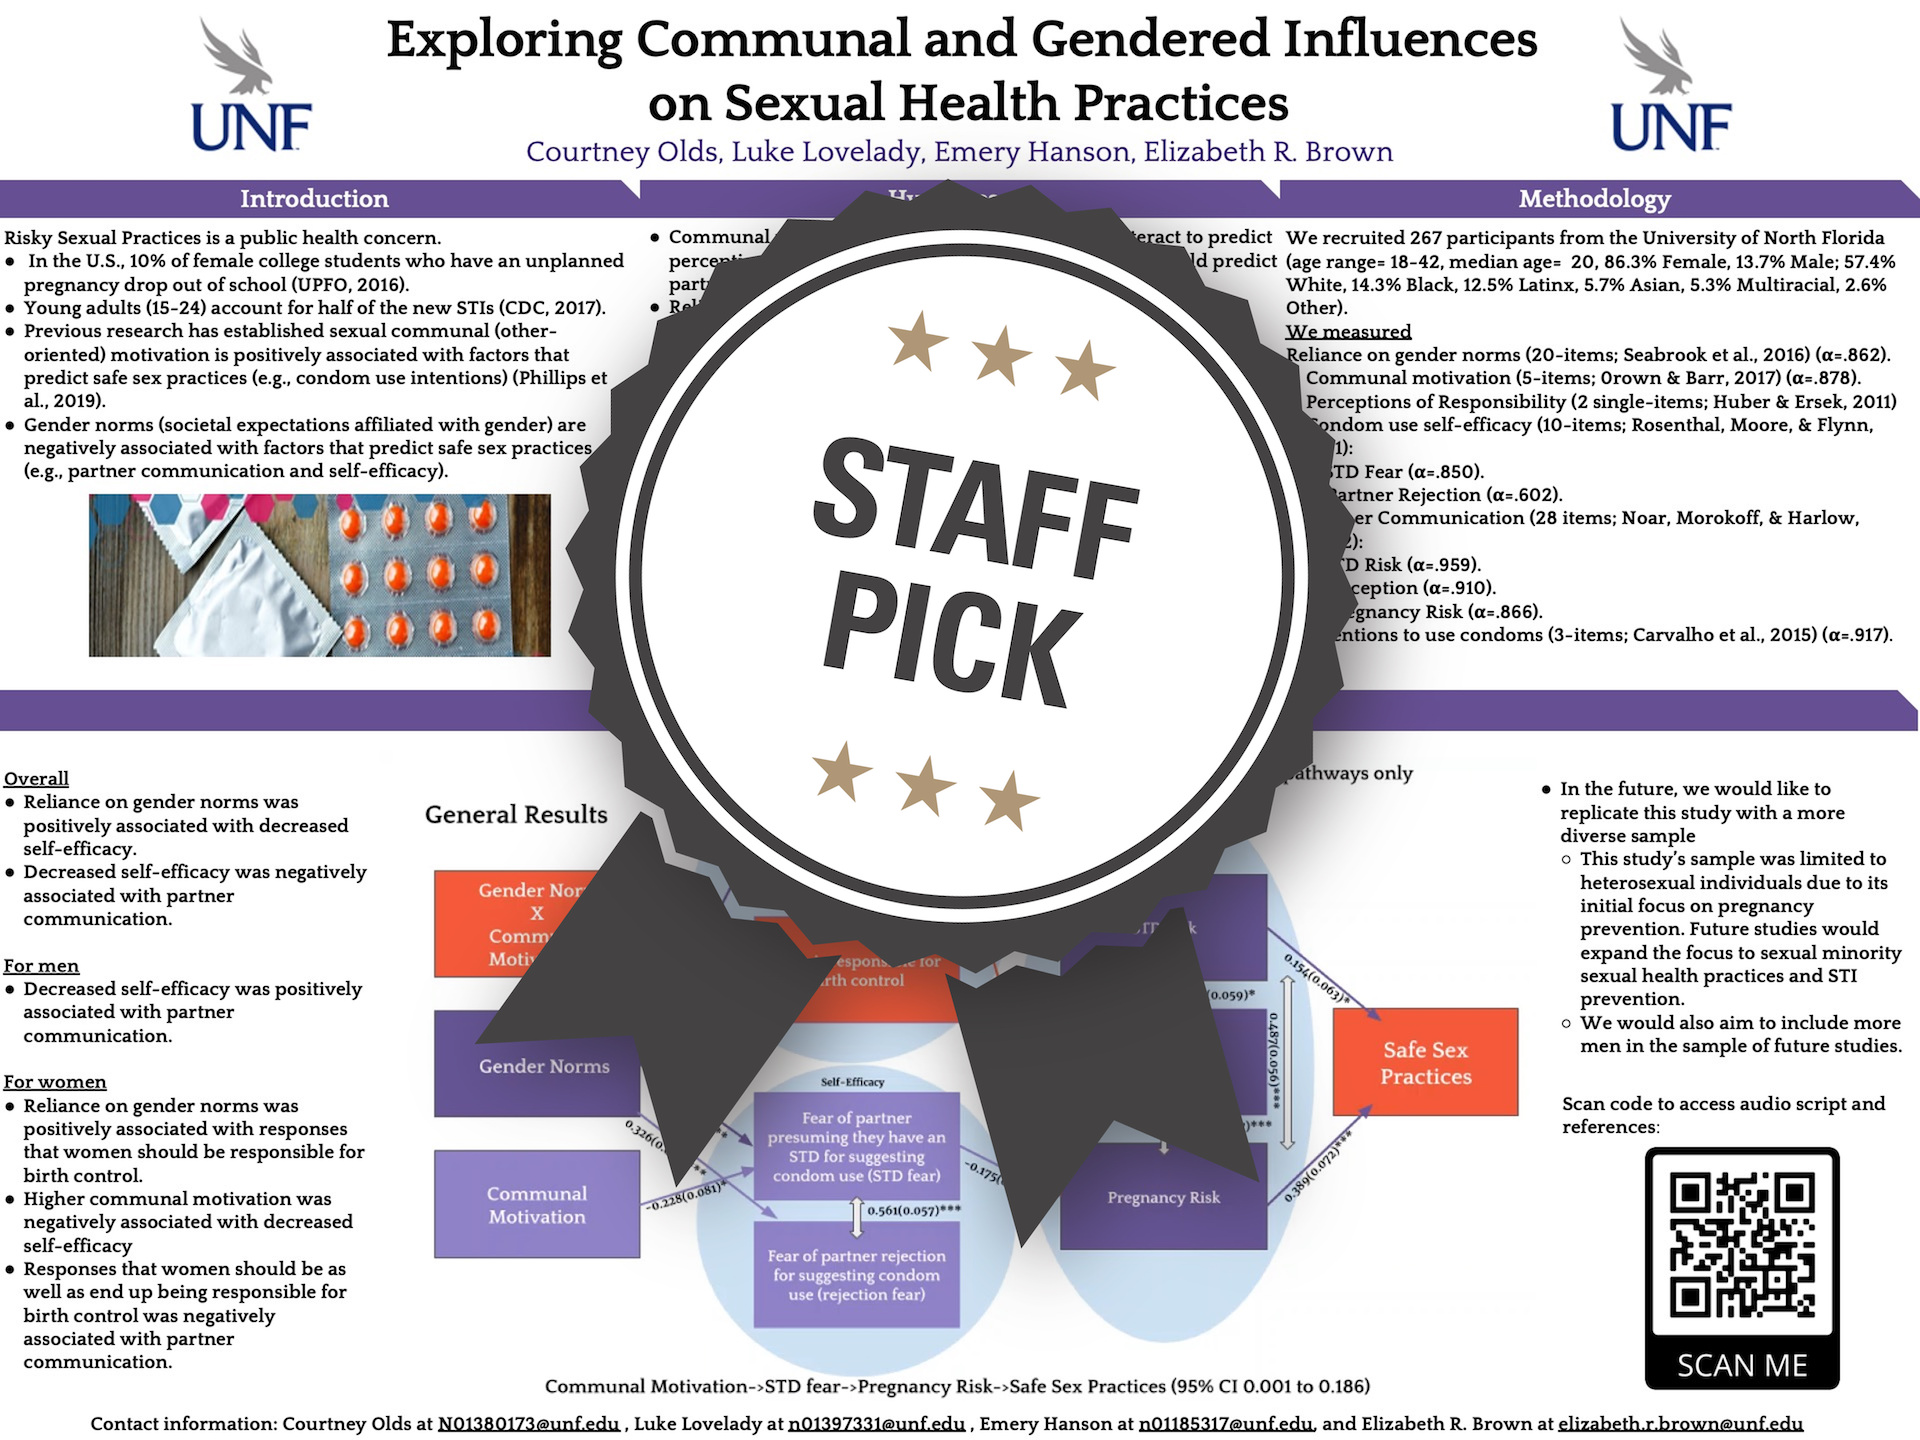 Exploring Communal and Gendered Influences on Sexual Health Practices Staff Pick poster